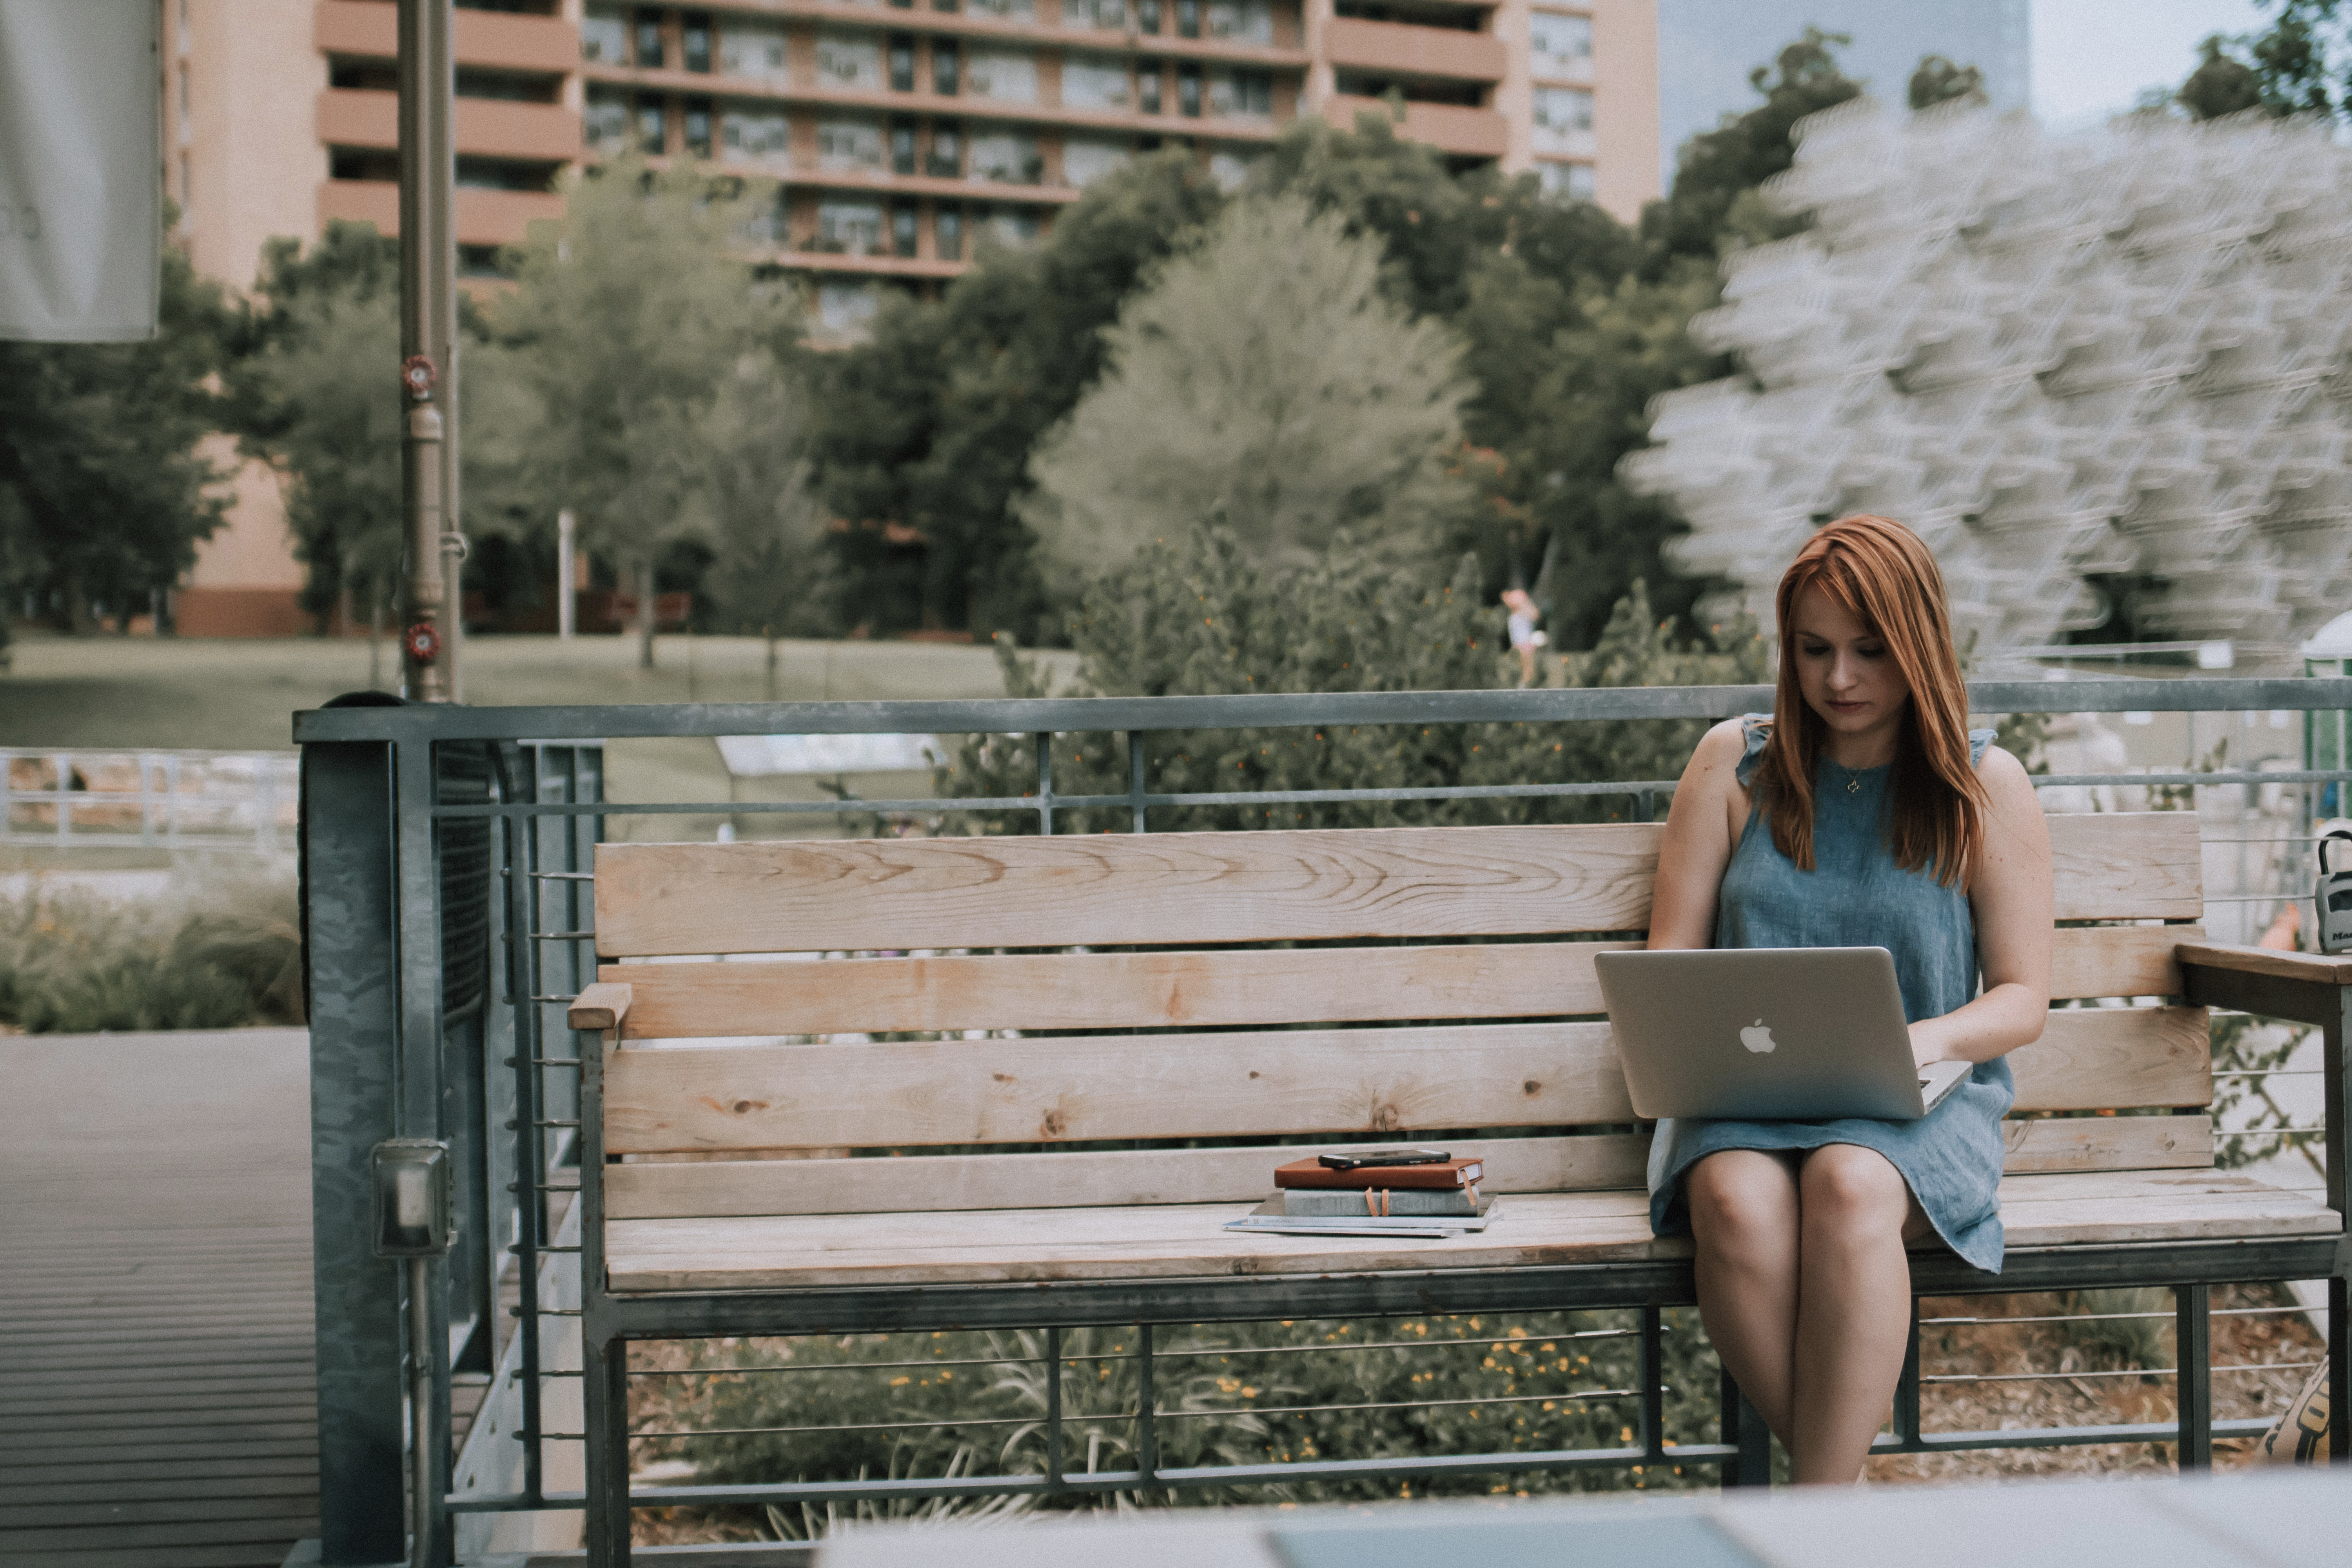 Digital nomad works from her laptop on a bench